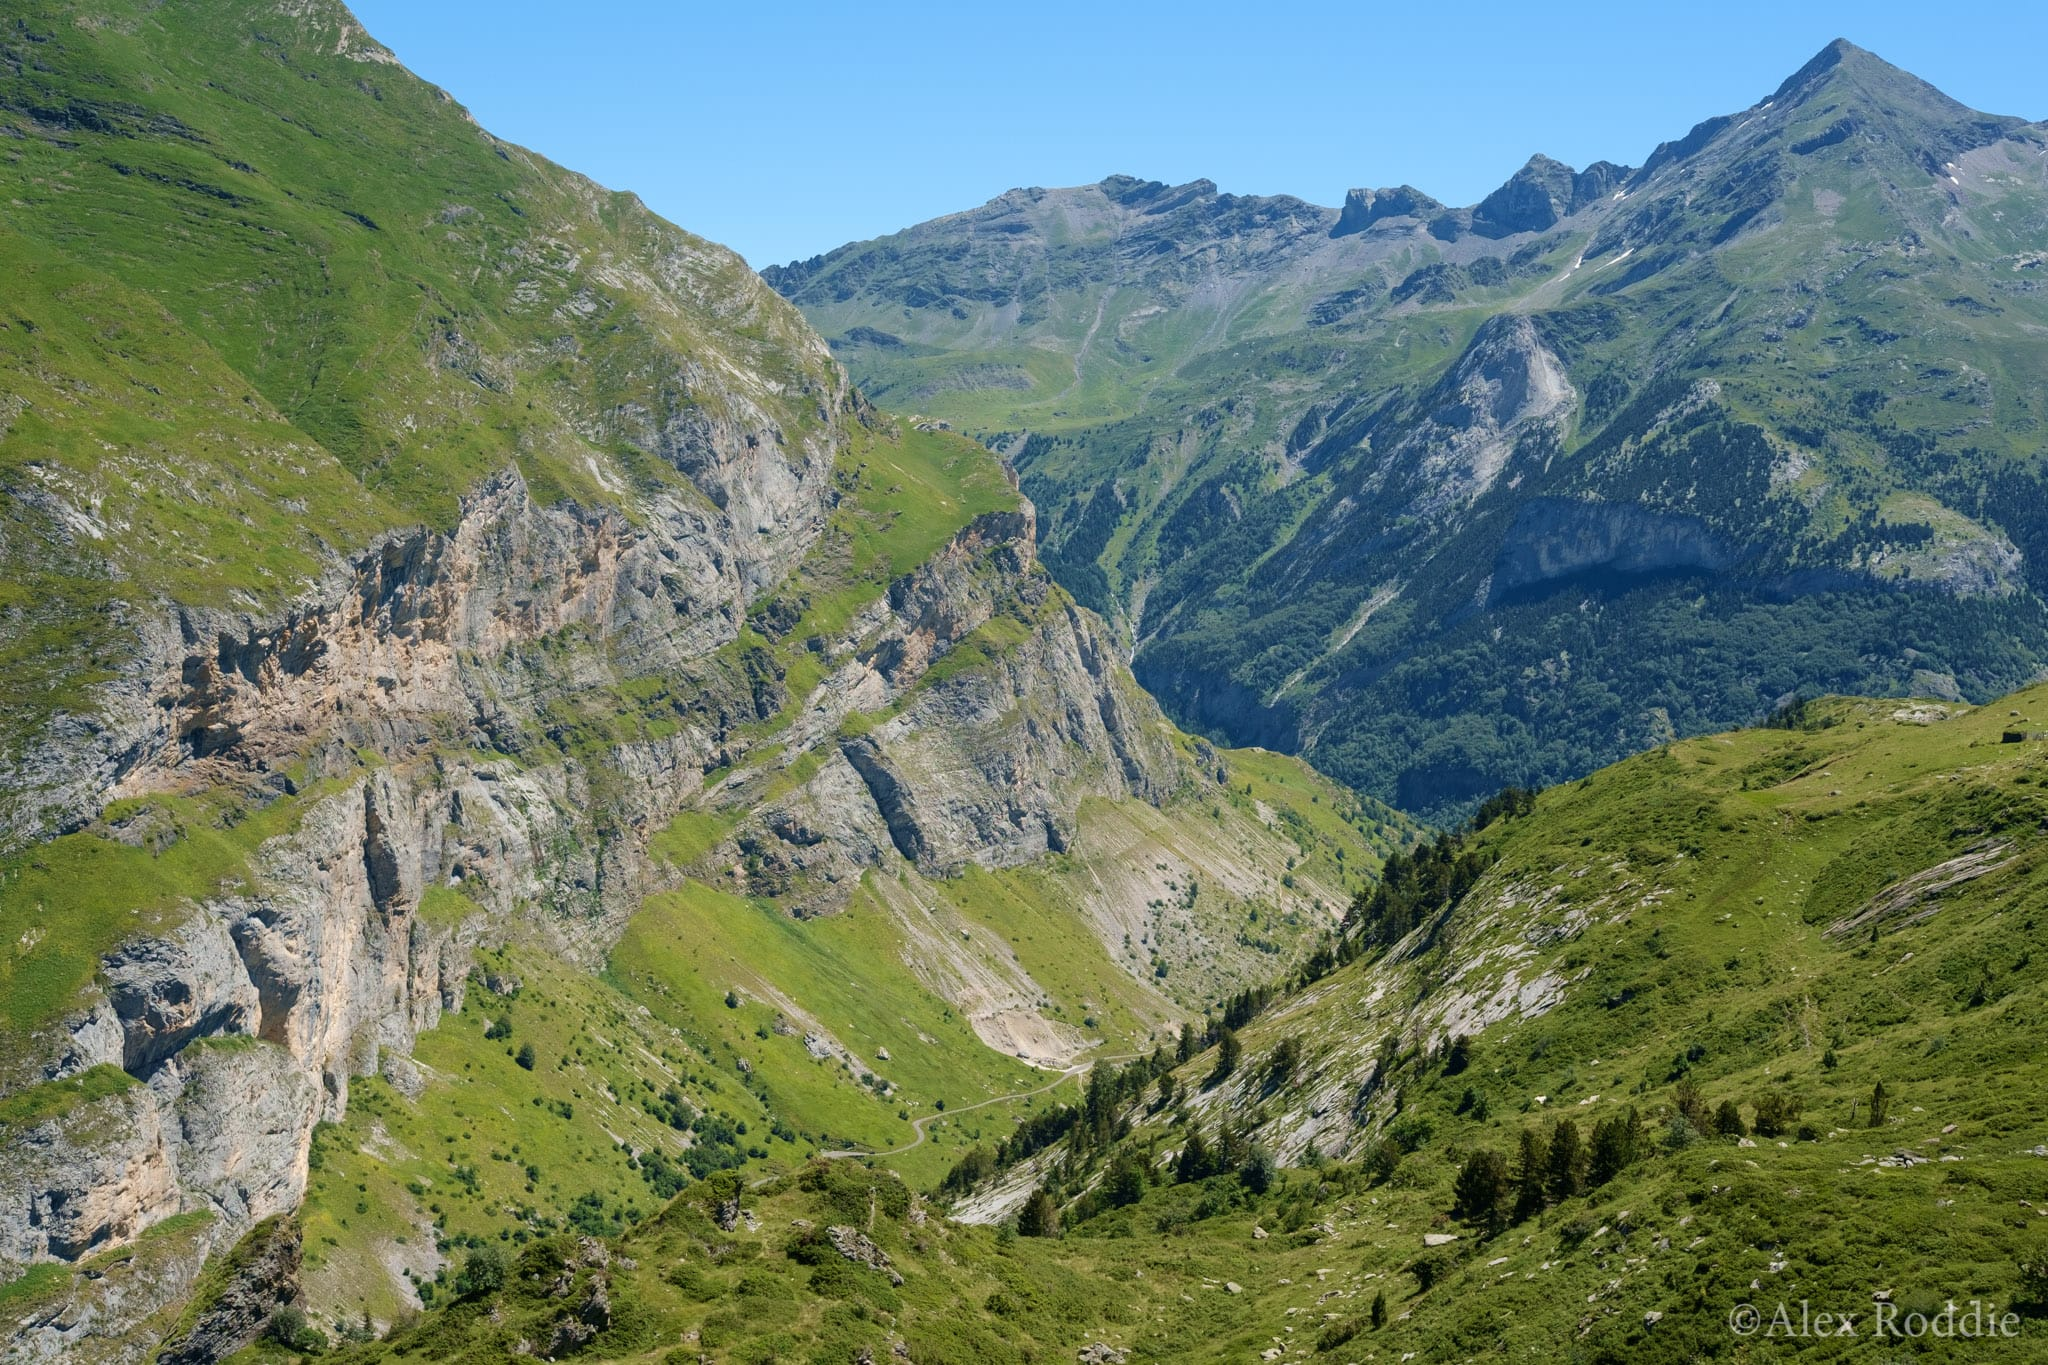 The descent to Gavarnie, with Pimene on the skyline